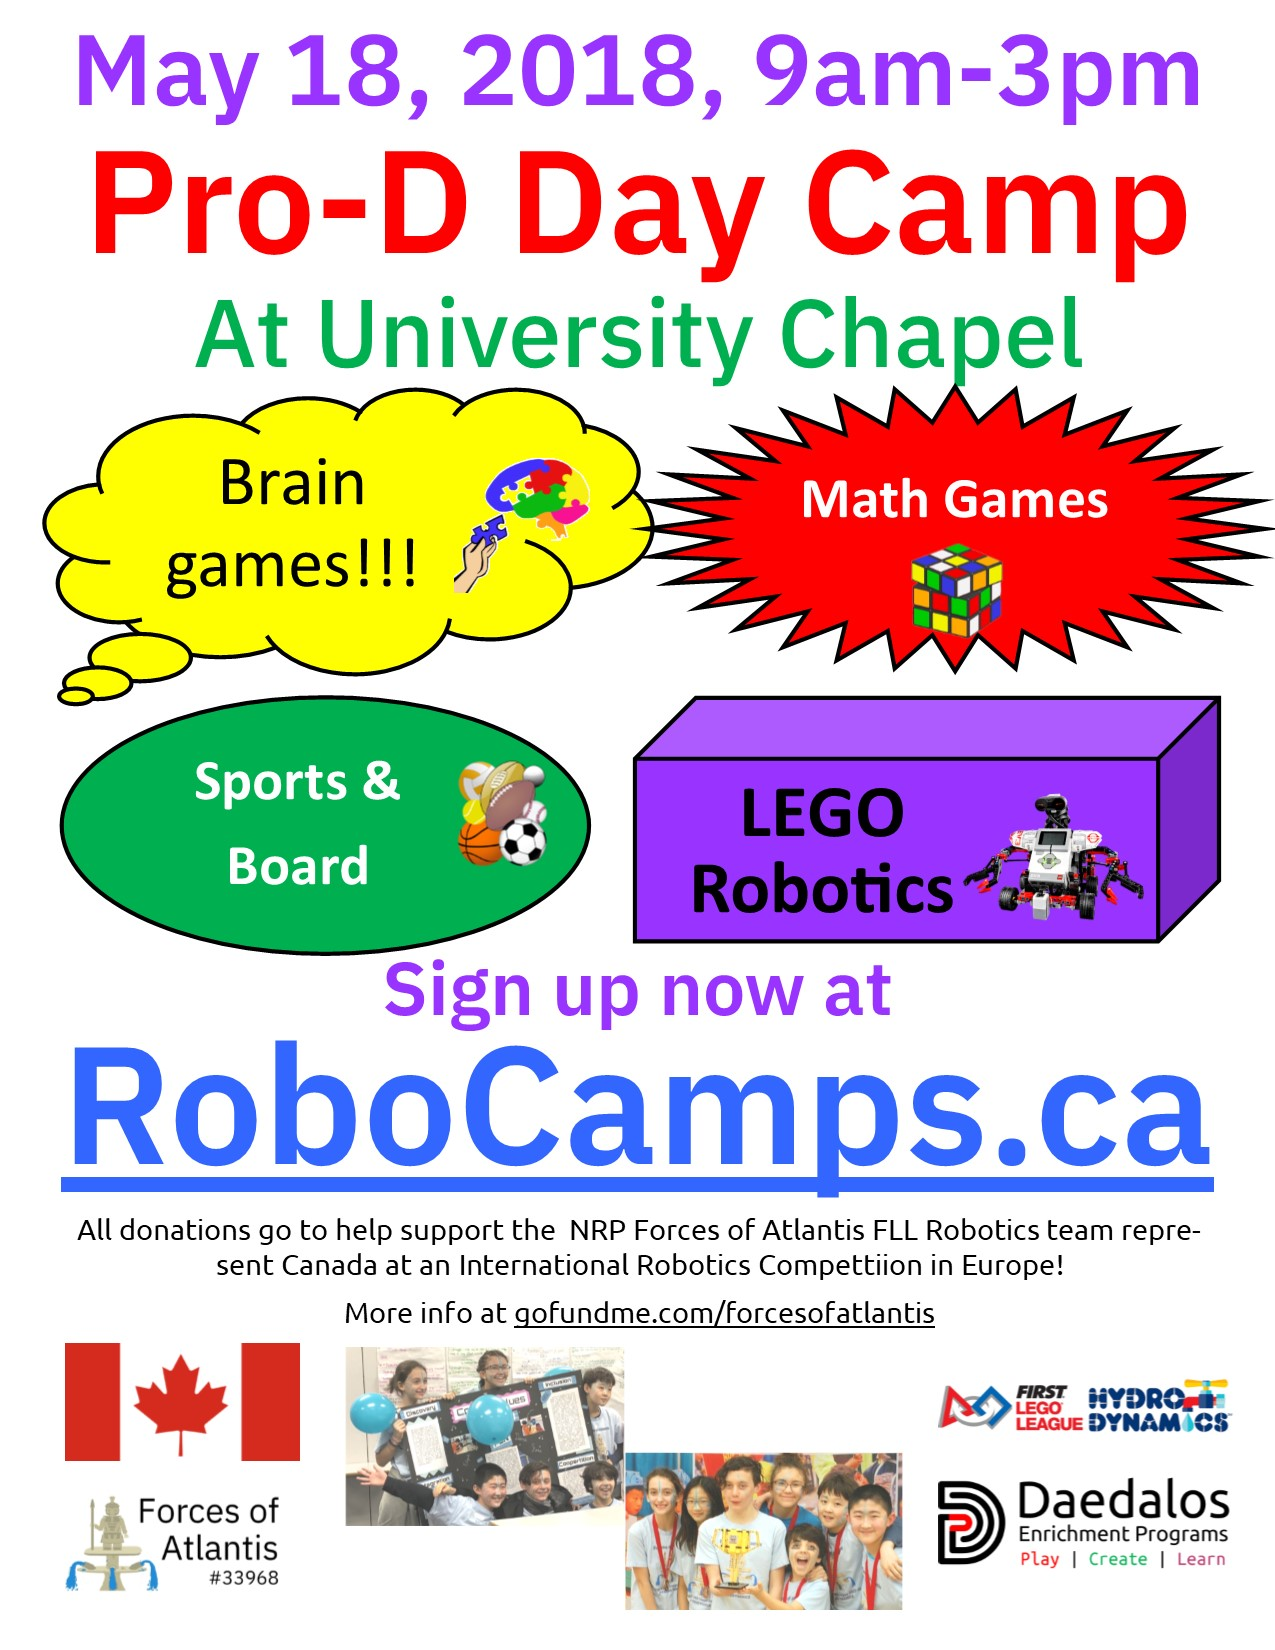 Pro-D Day Camp on May 18th at University Chapel – Brain Games, Math Games, Sports & Robotics!